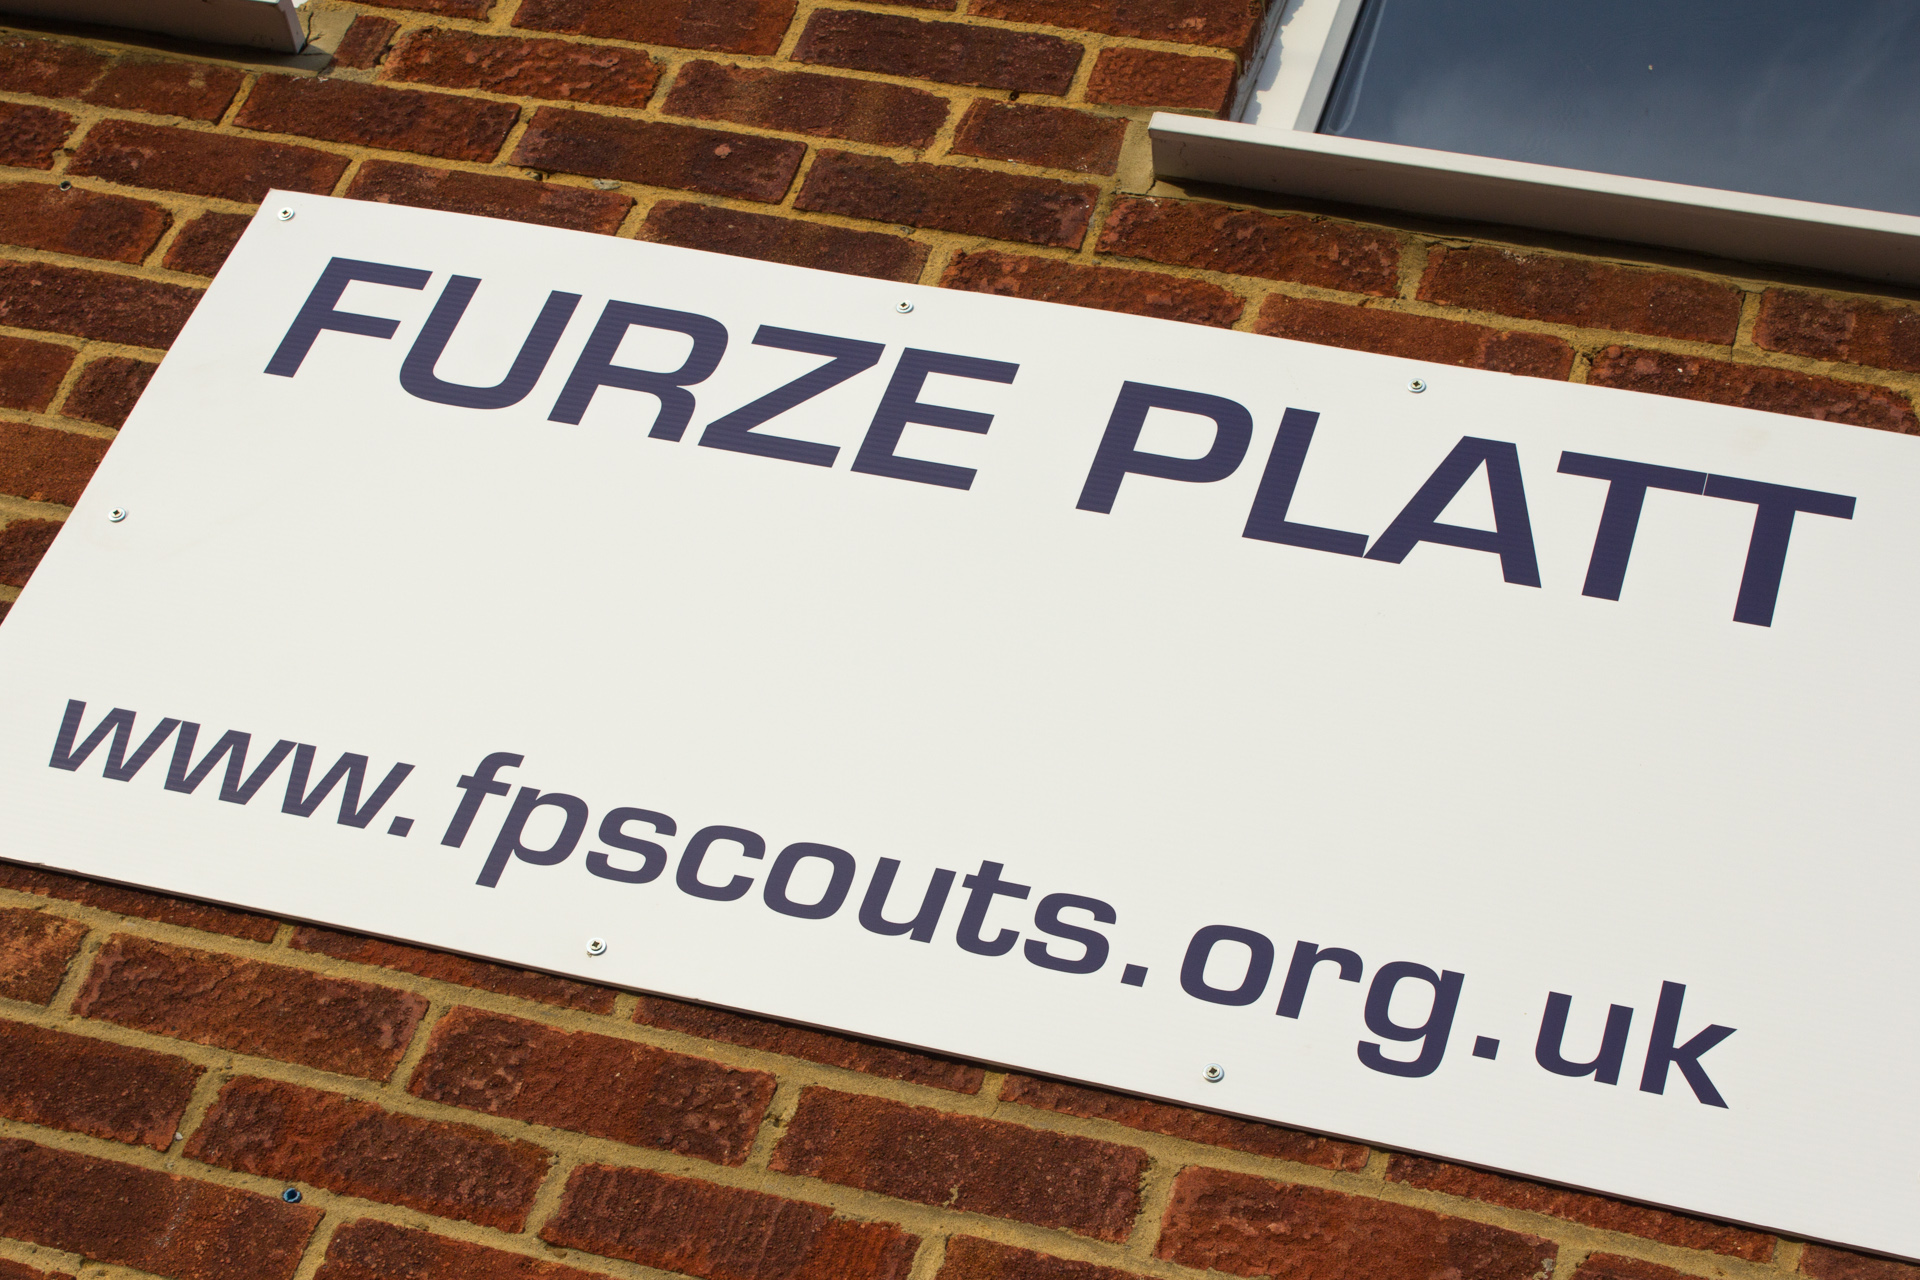 Signage outside the Scout Hut.